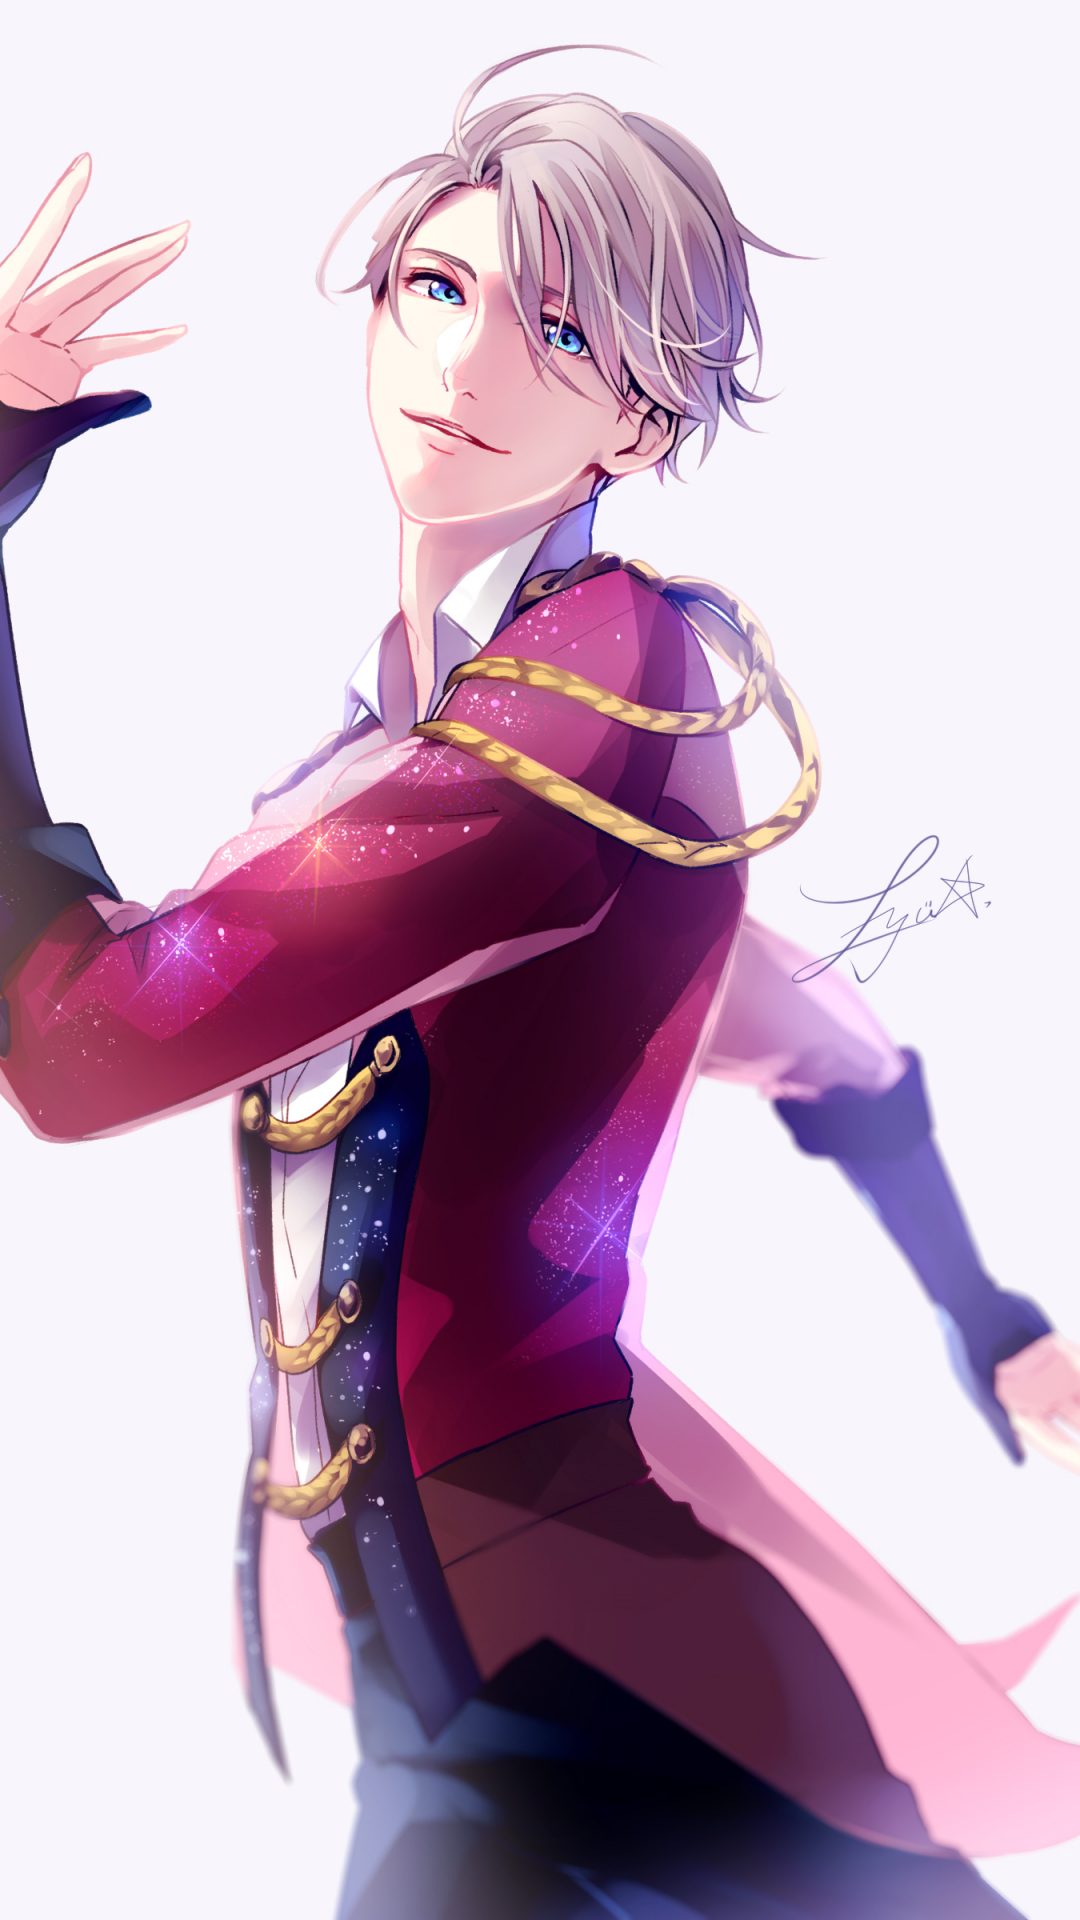 Free Download Victor Nikiforov Yuri On Ice Mobile Wallpaper